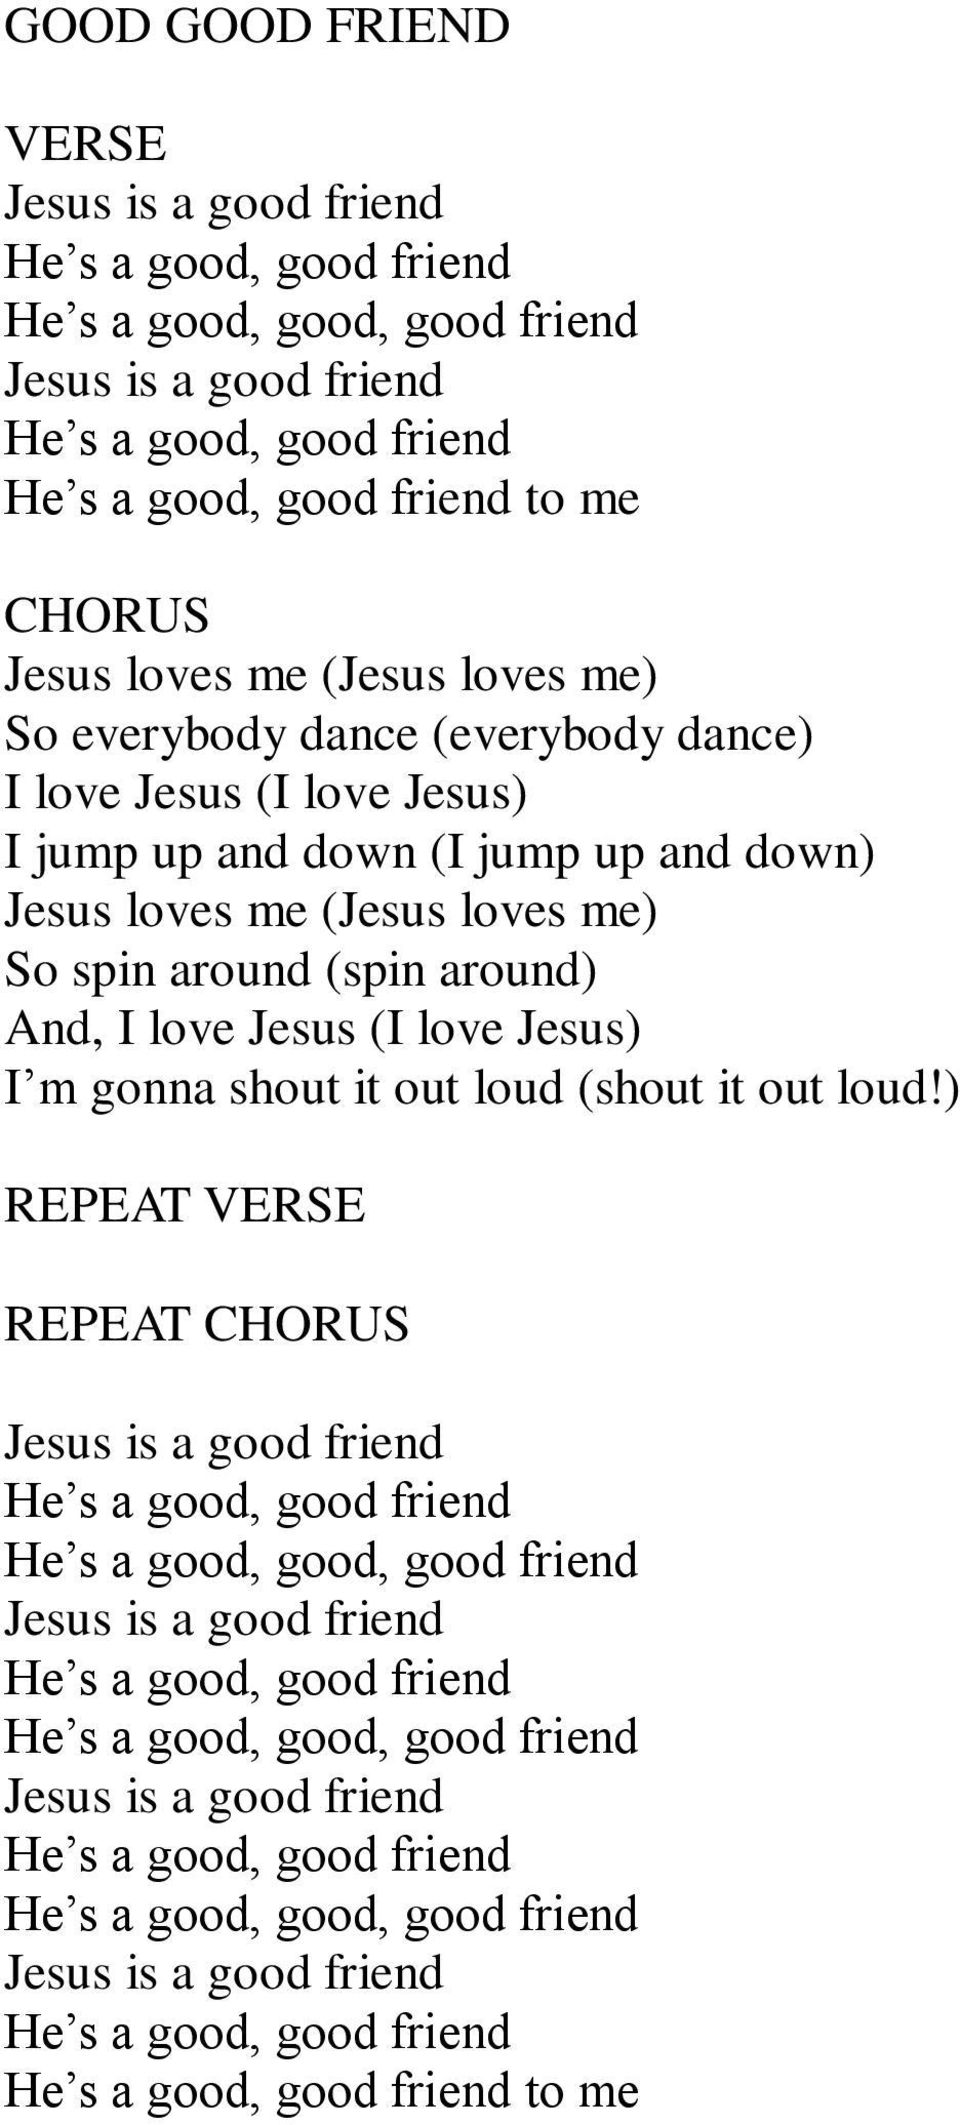 Jesus (I love Jesus) I m gonna shout it out loud (shout it out loud!